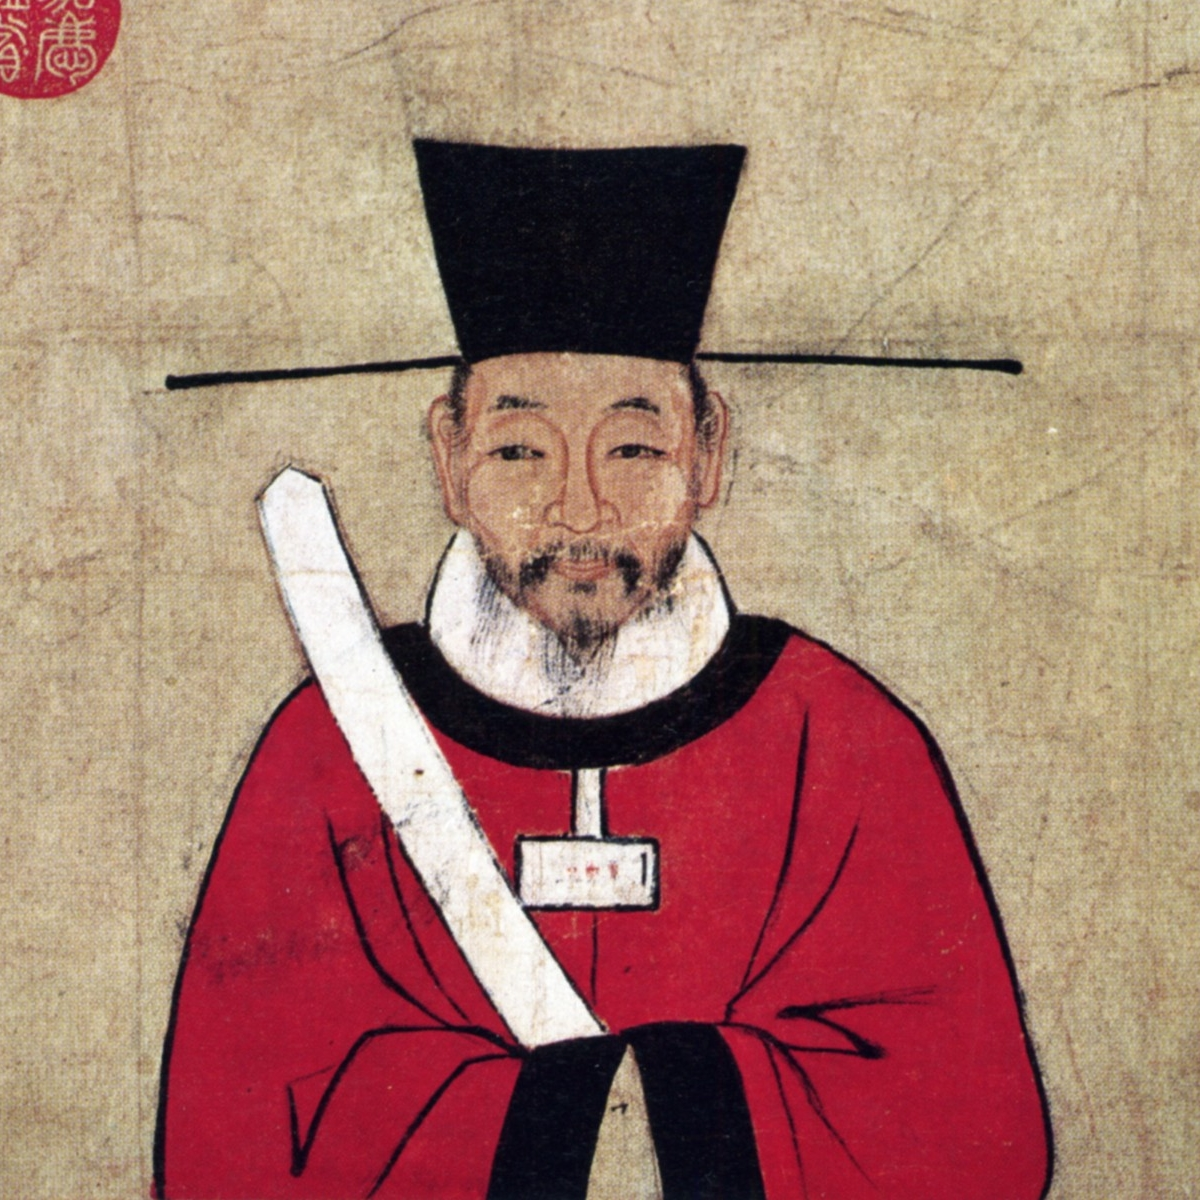 Image of Sima Guang, a government officials and historian in 11th century China